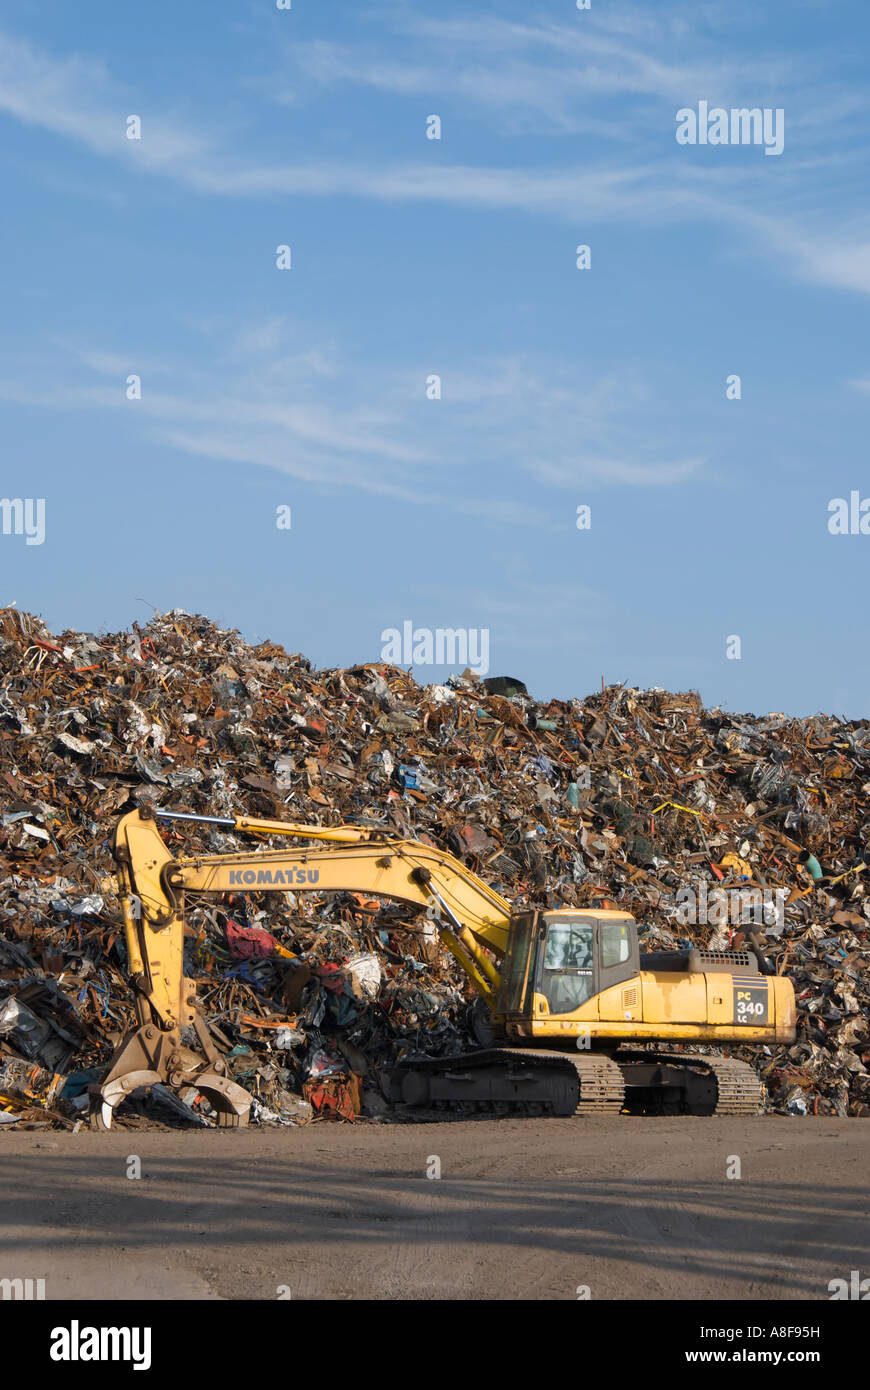 A pile of  scrap metal  ready for recycling, with dormant machinery in the foreground - Stock Image